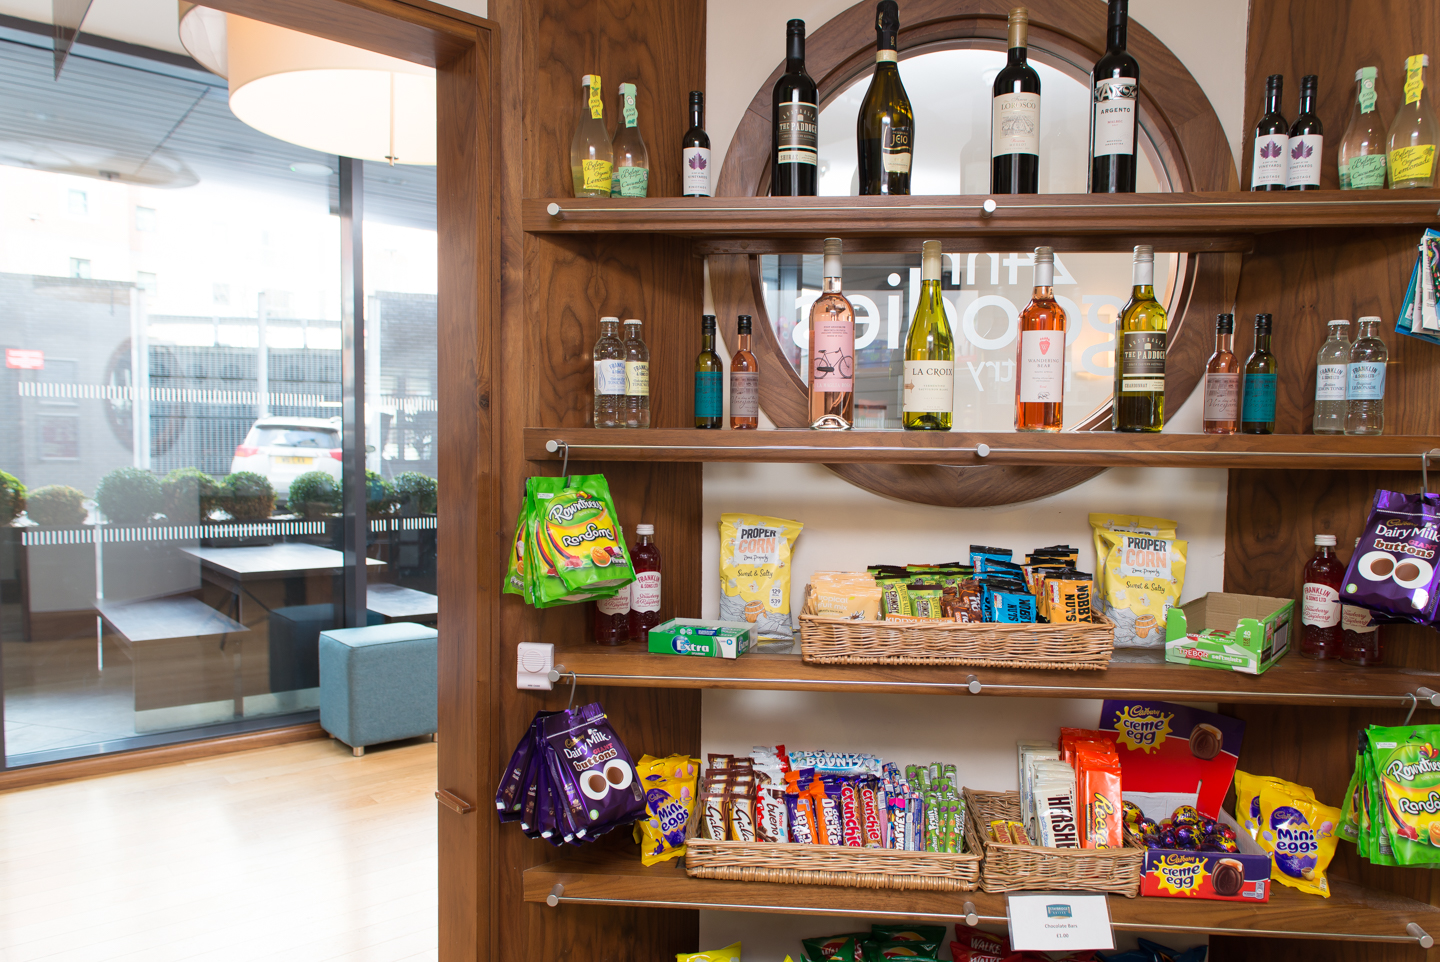 Pantry at Staybridge Suites Newcastle - Citybase Apartments